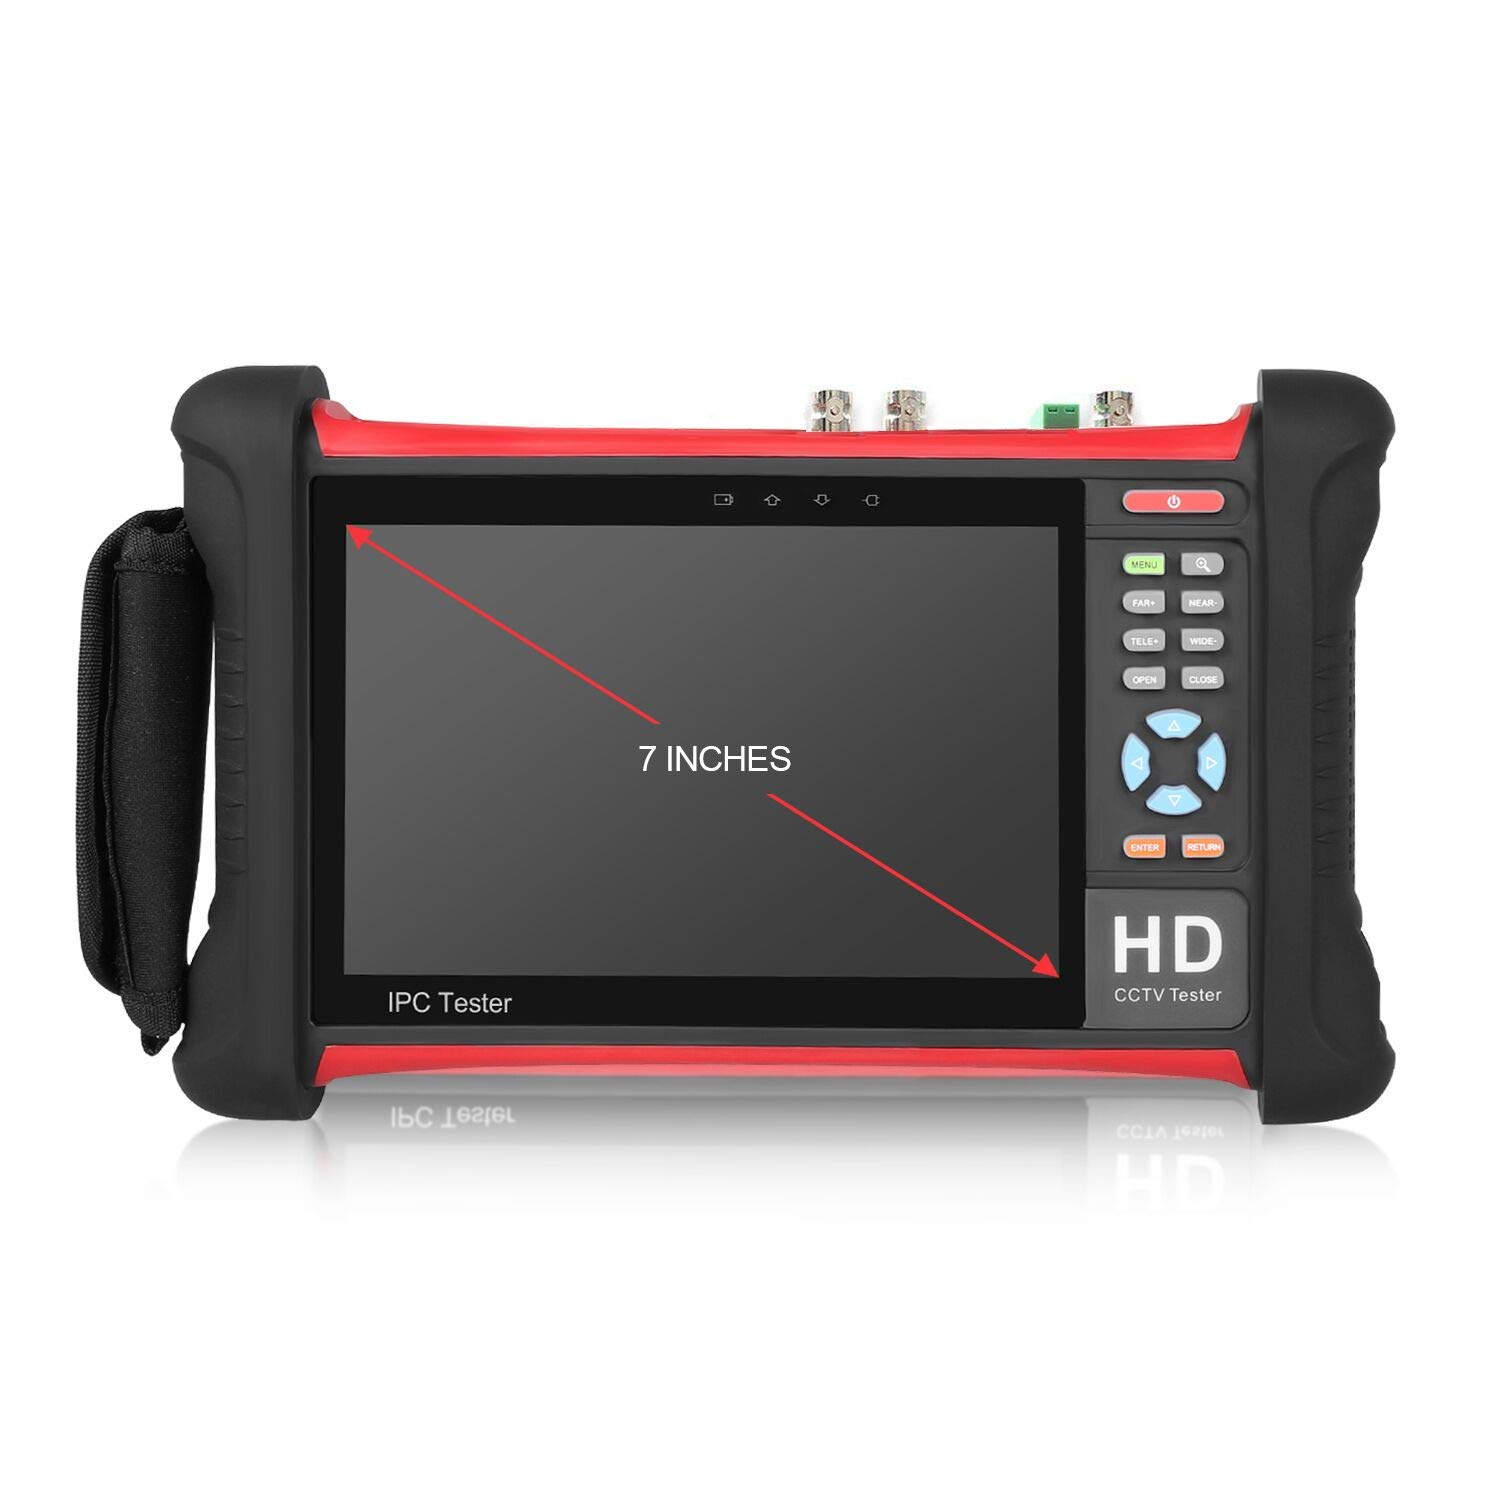 SGEF IP Camera Tester 7 inch 1080p Retina Display Security CCTV Tester Monitor with HD 8MP/AHD/CVI/TVI SDI/POE/TDR/HDMI in&Out/4K H 265/WIFI/Firmware Upgrade (X7 ADHS) by SGEF (Image #2)